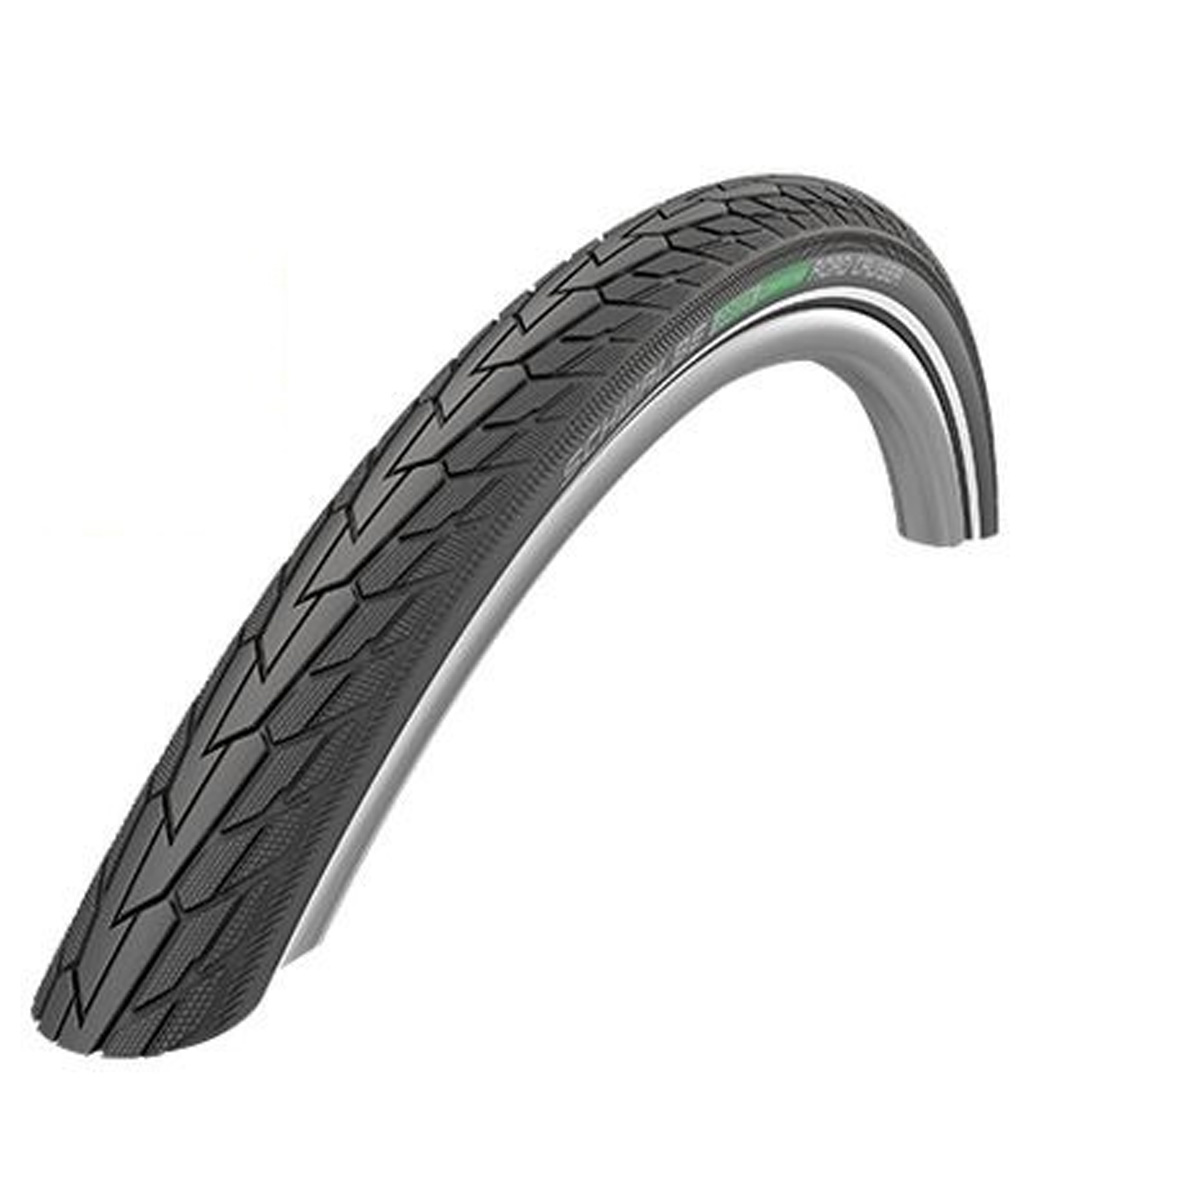 Schwalbe Road Cruiser HS 484 Mountain Bicycle Tire - Wire Bead - Reflex